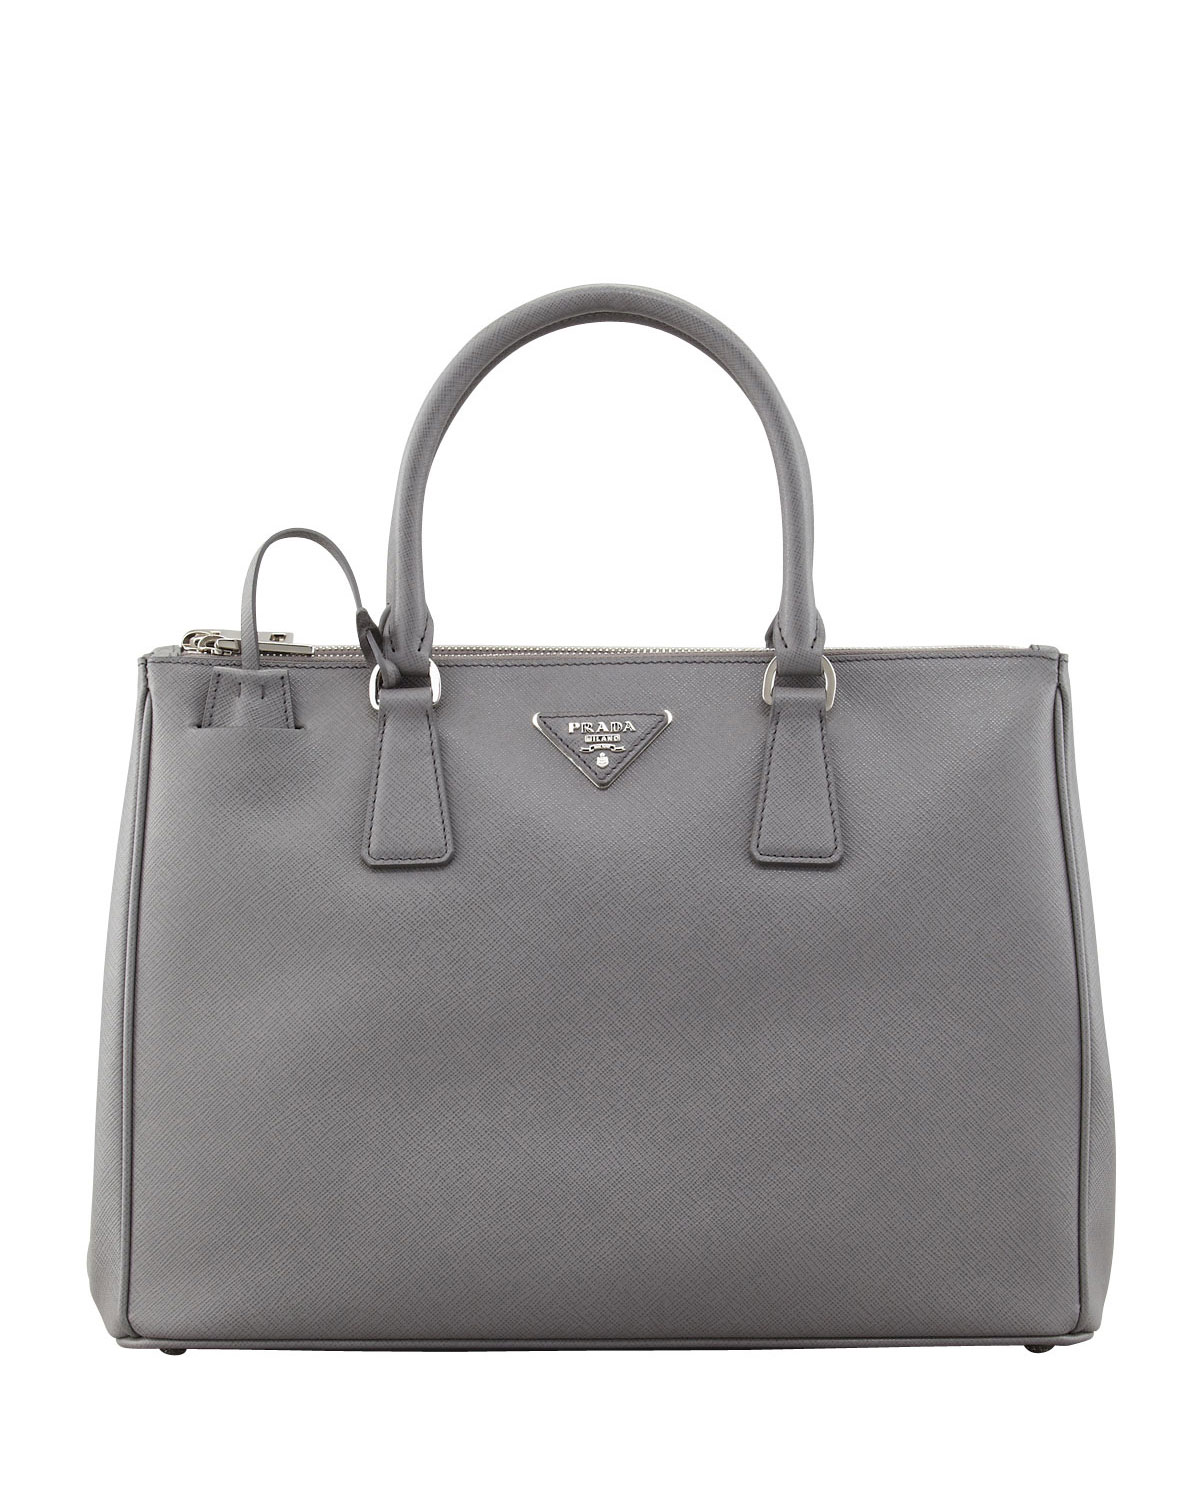 65a179f25995 Prada Saffiano Double-Zip Executive Tote